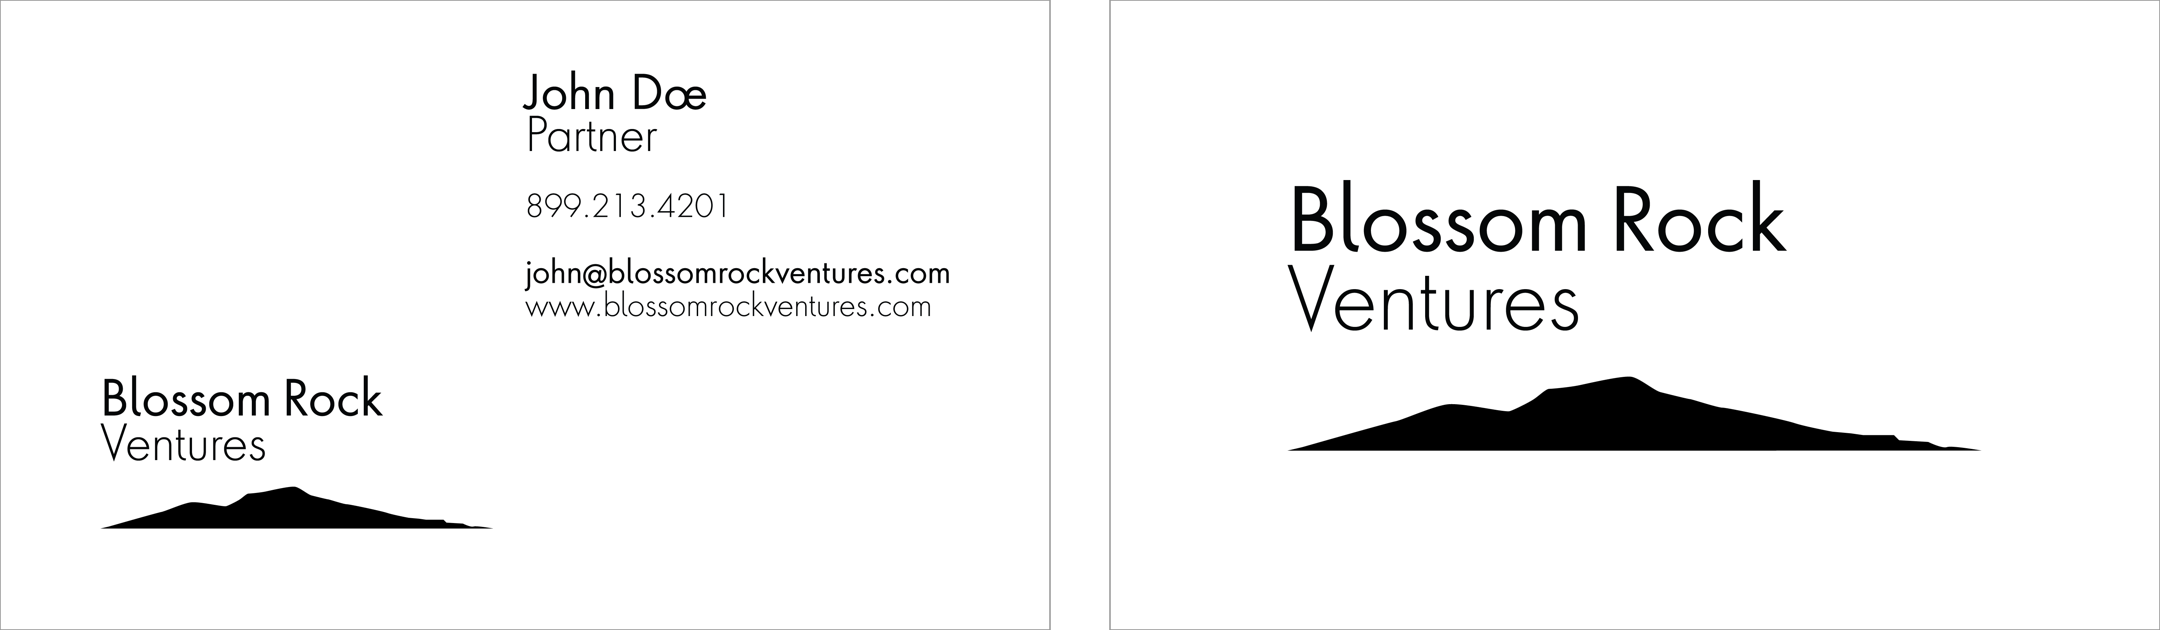 Blossom Rock Business Cards Front and Back